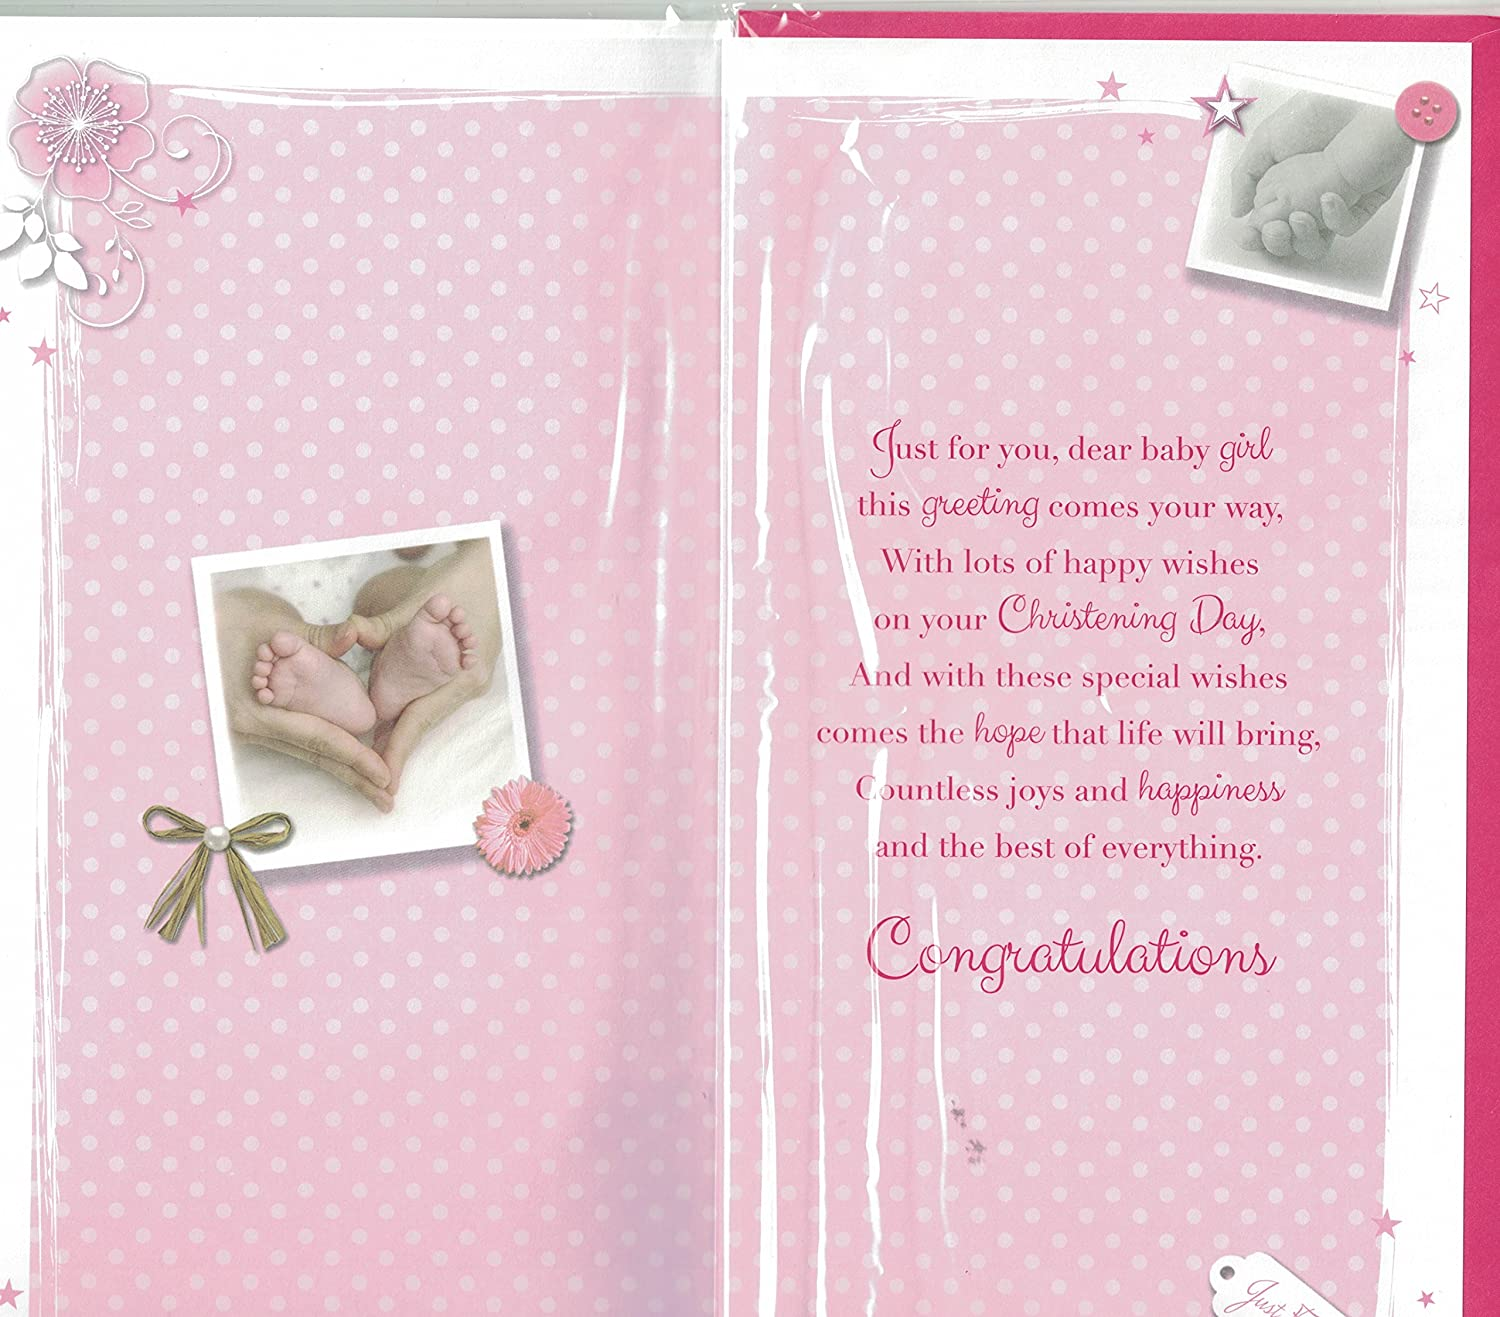 Girls christening card sending special wishes on your girls christening card sending special wishes on your christening day baby feet hands quality slim card amazon toys games kristyandbryce Choice Image